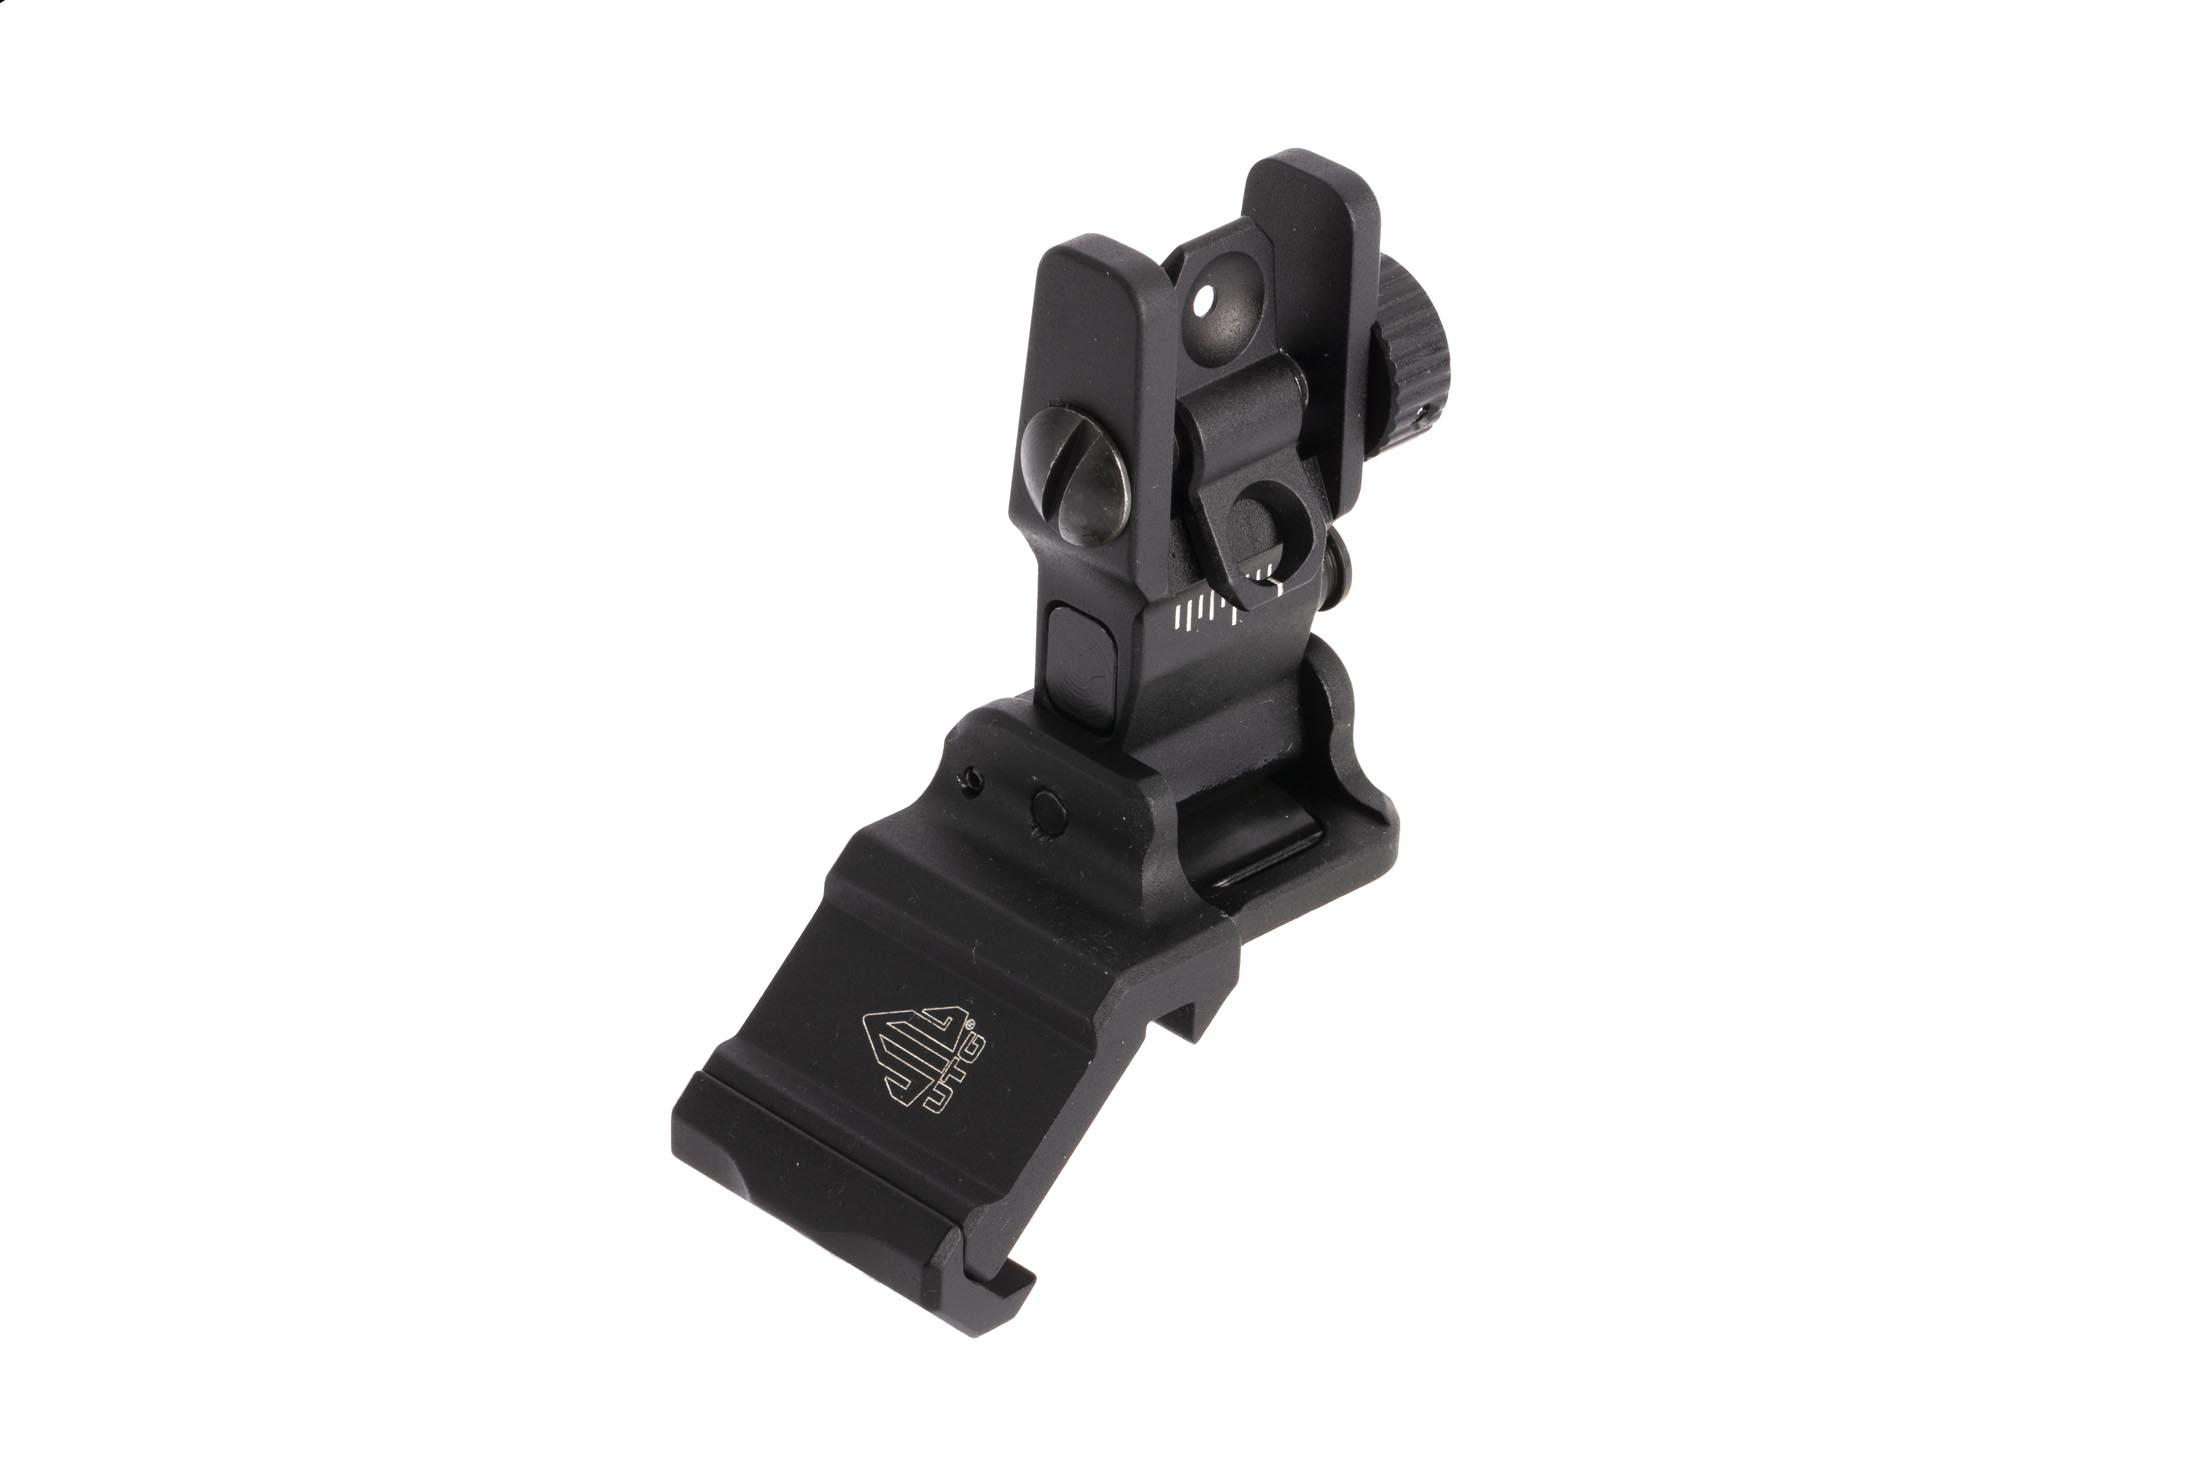 Leapers UTG ACCU-SYNC rear sight installs easily to standard M1913 picatinny rails , ideal for right handed shooters.